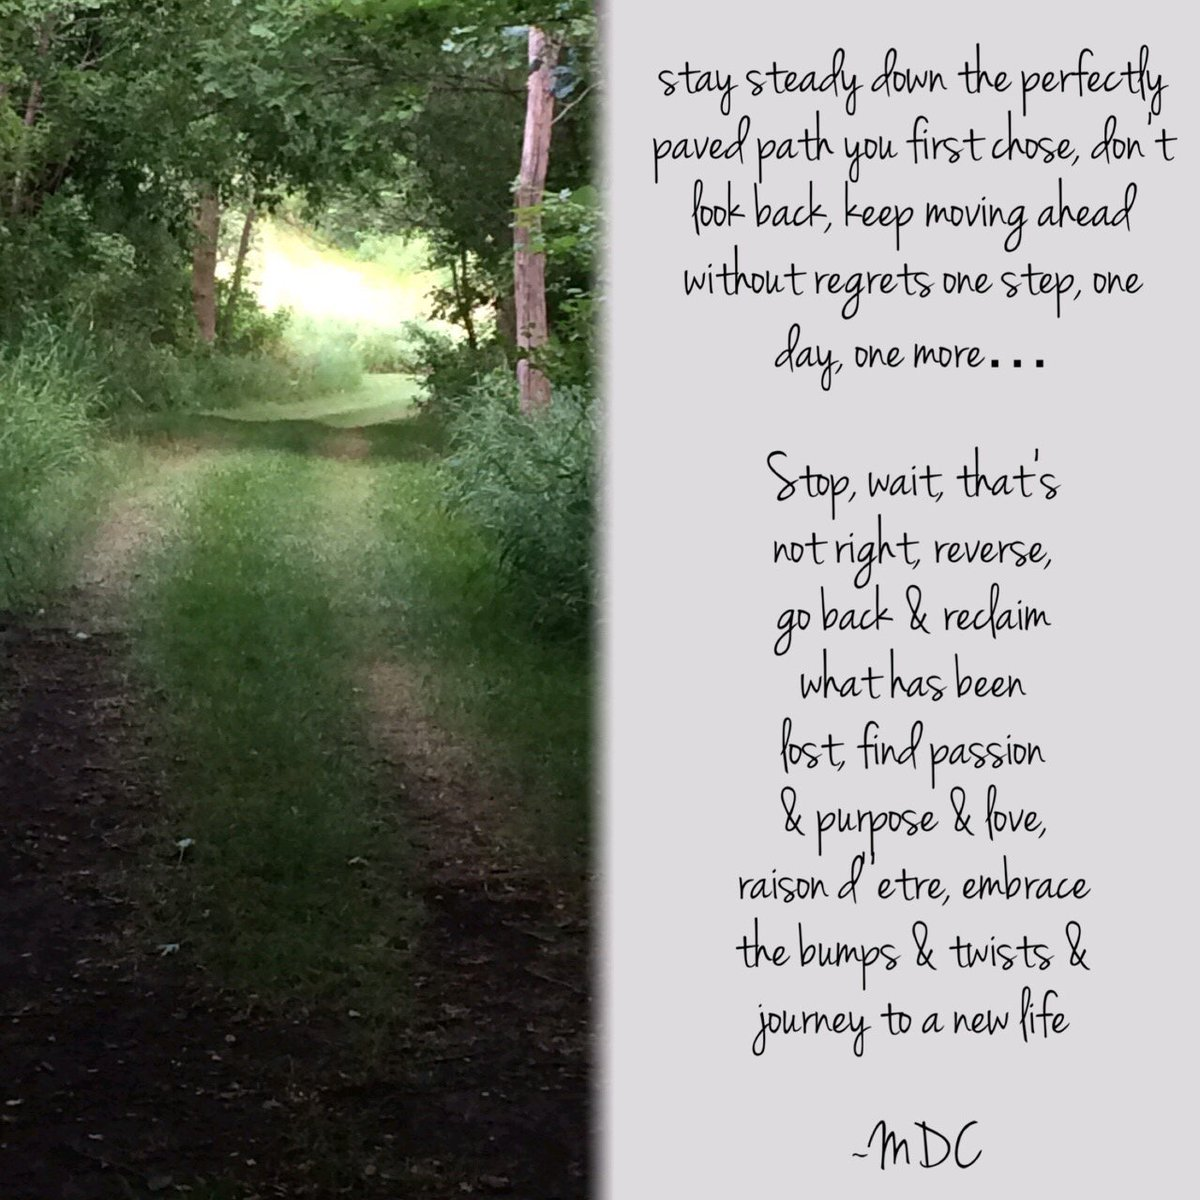 I have been rethinking a lot about the path I am on.  #BentHalos #poem #followyourpassion <br>http://pic.twitter.com/yUT5TS8JeP